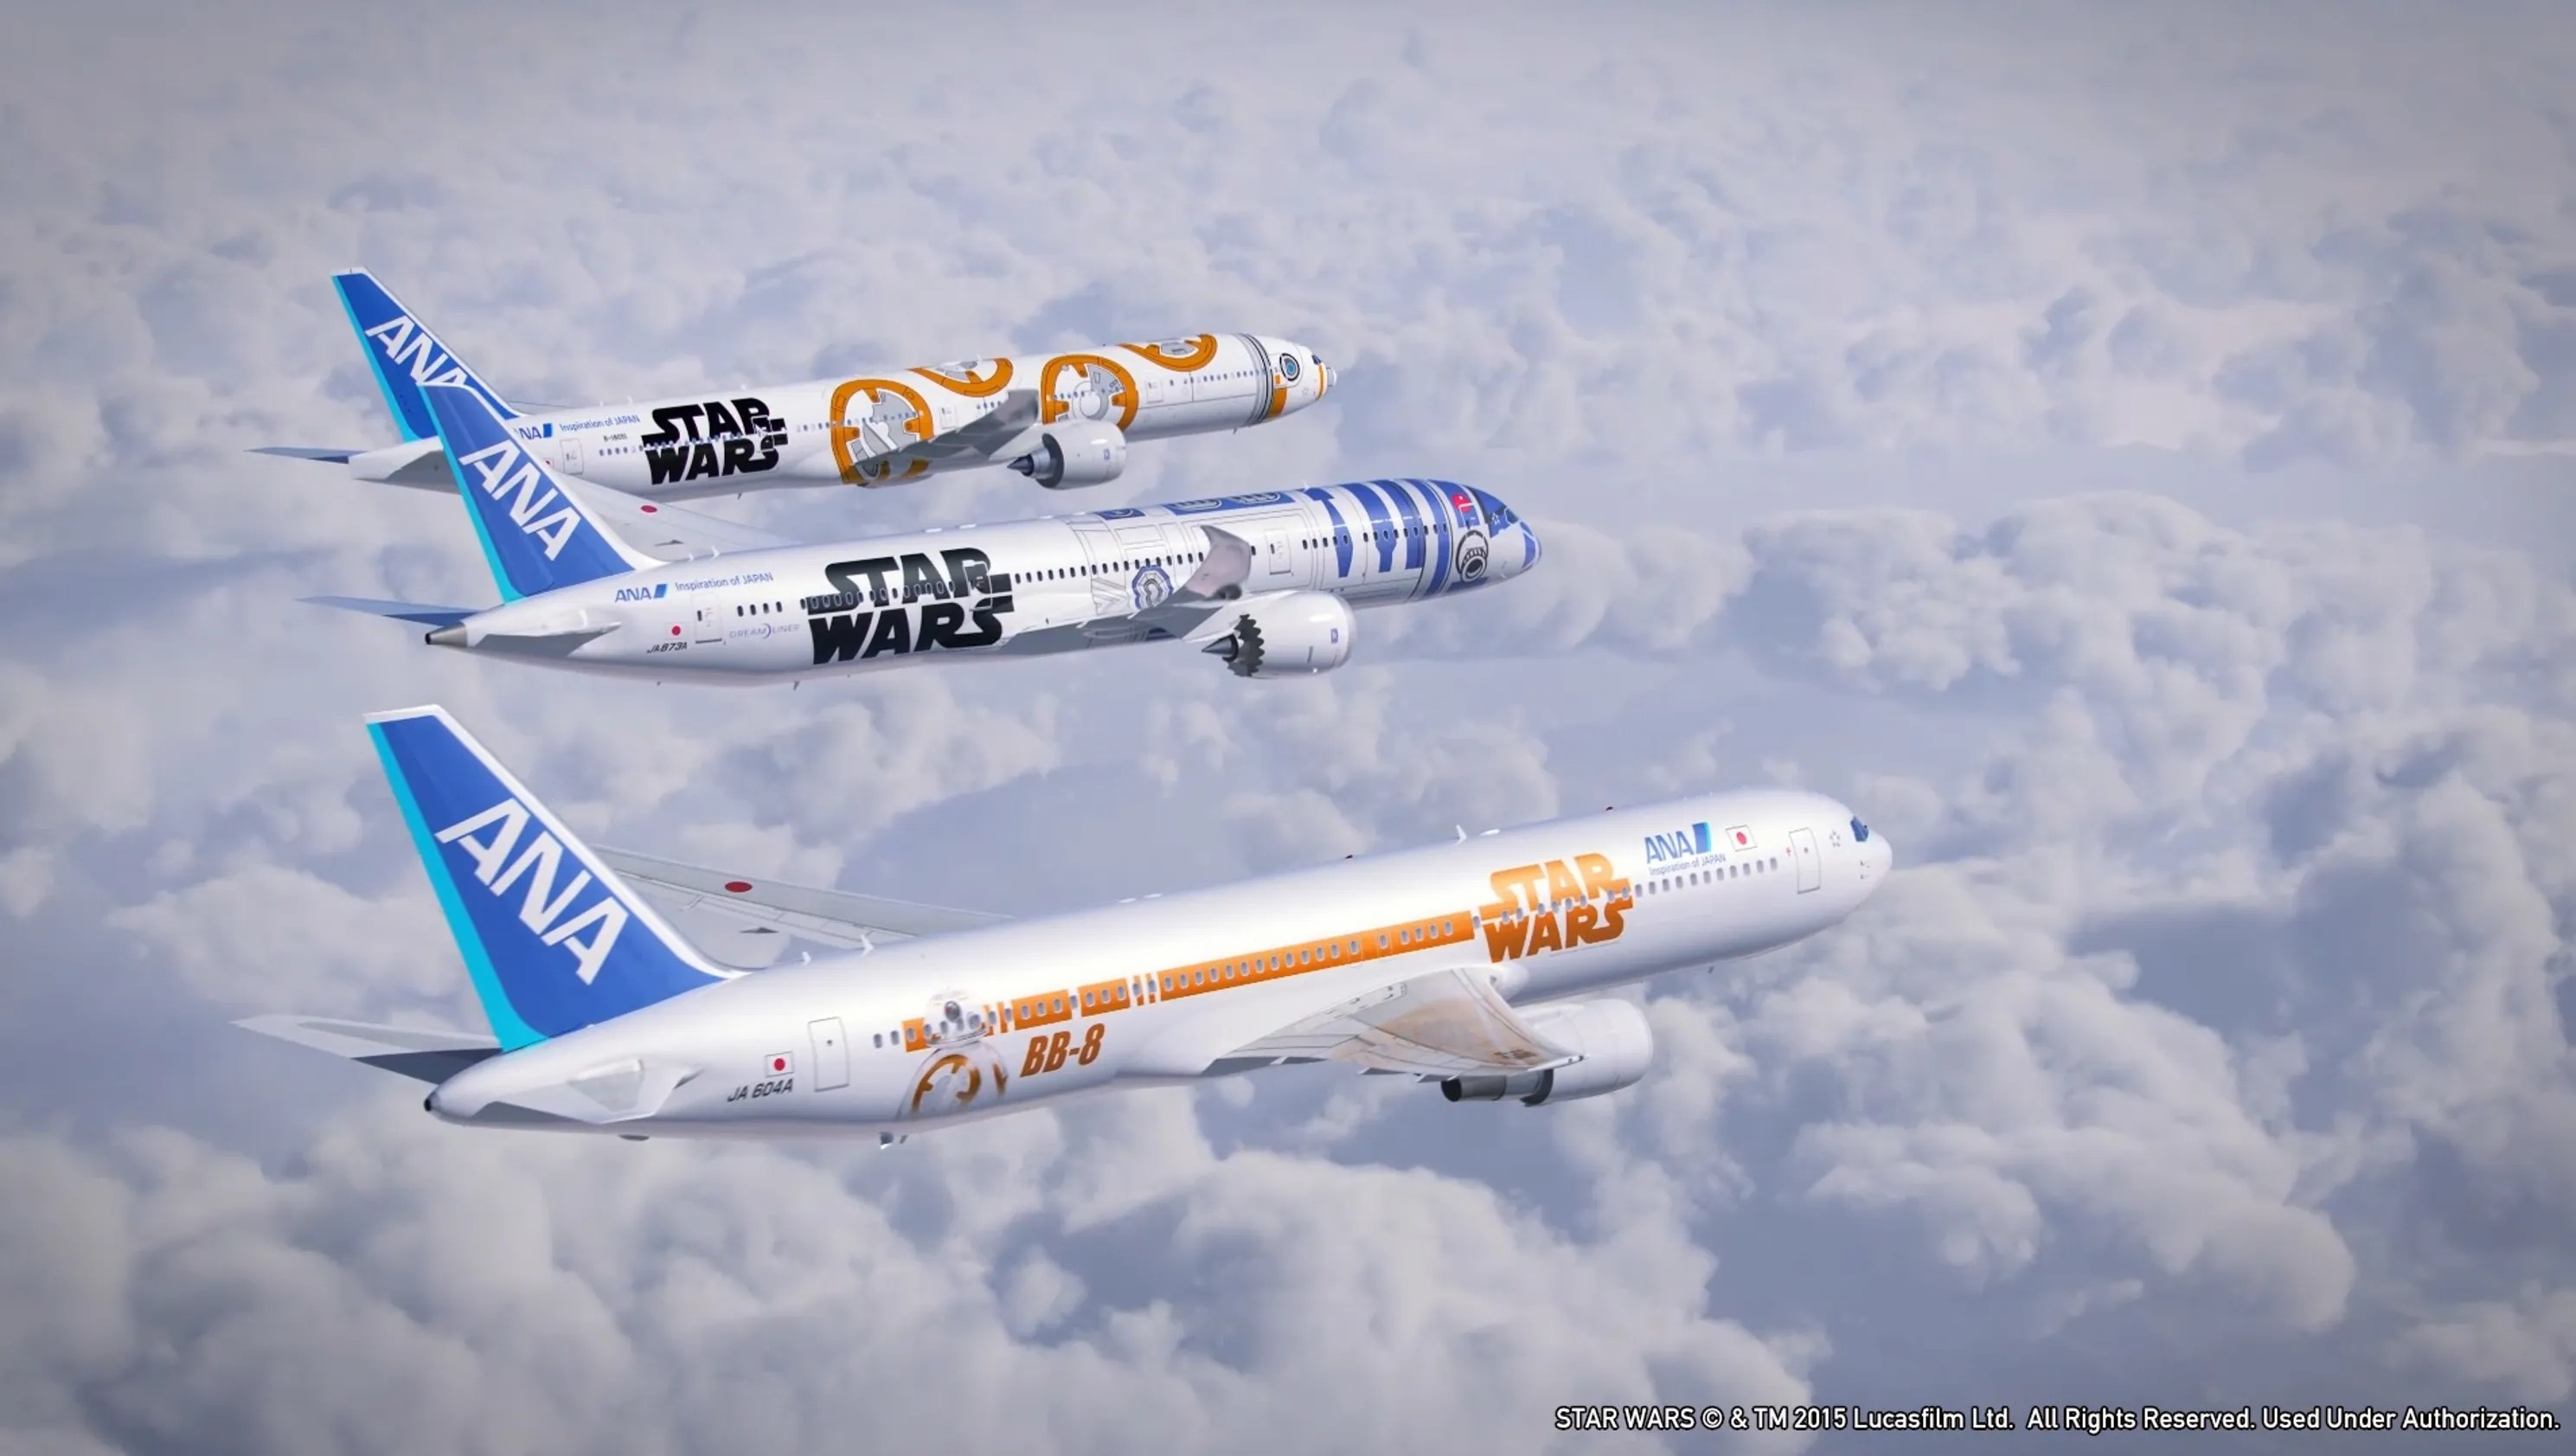 All Nippon Airways Adds Two More 'Star Wars' Jets